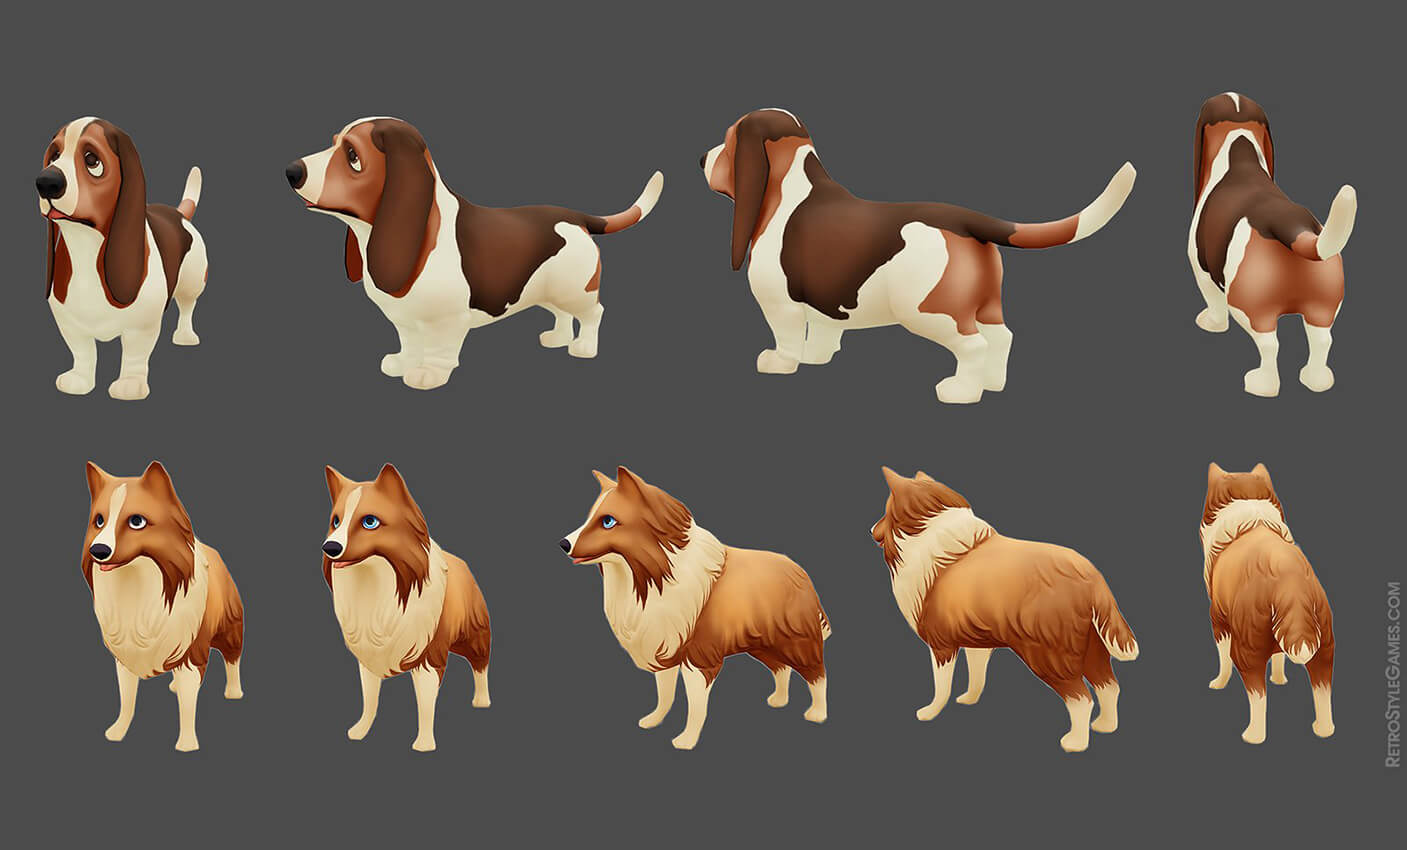 3D Game Art - Next-Gen Characters, Low Poly Modeling and CG